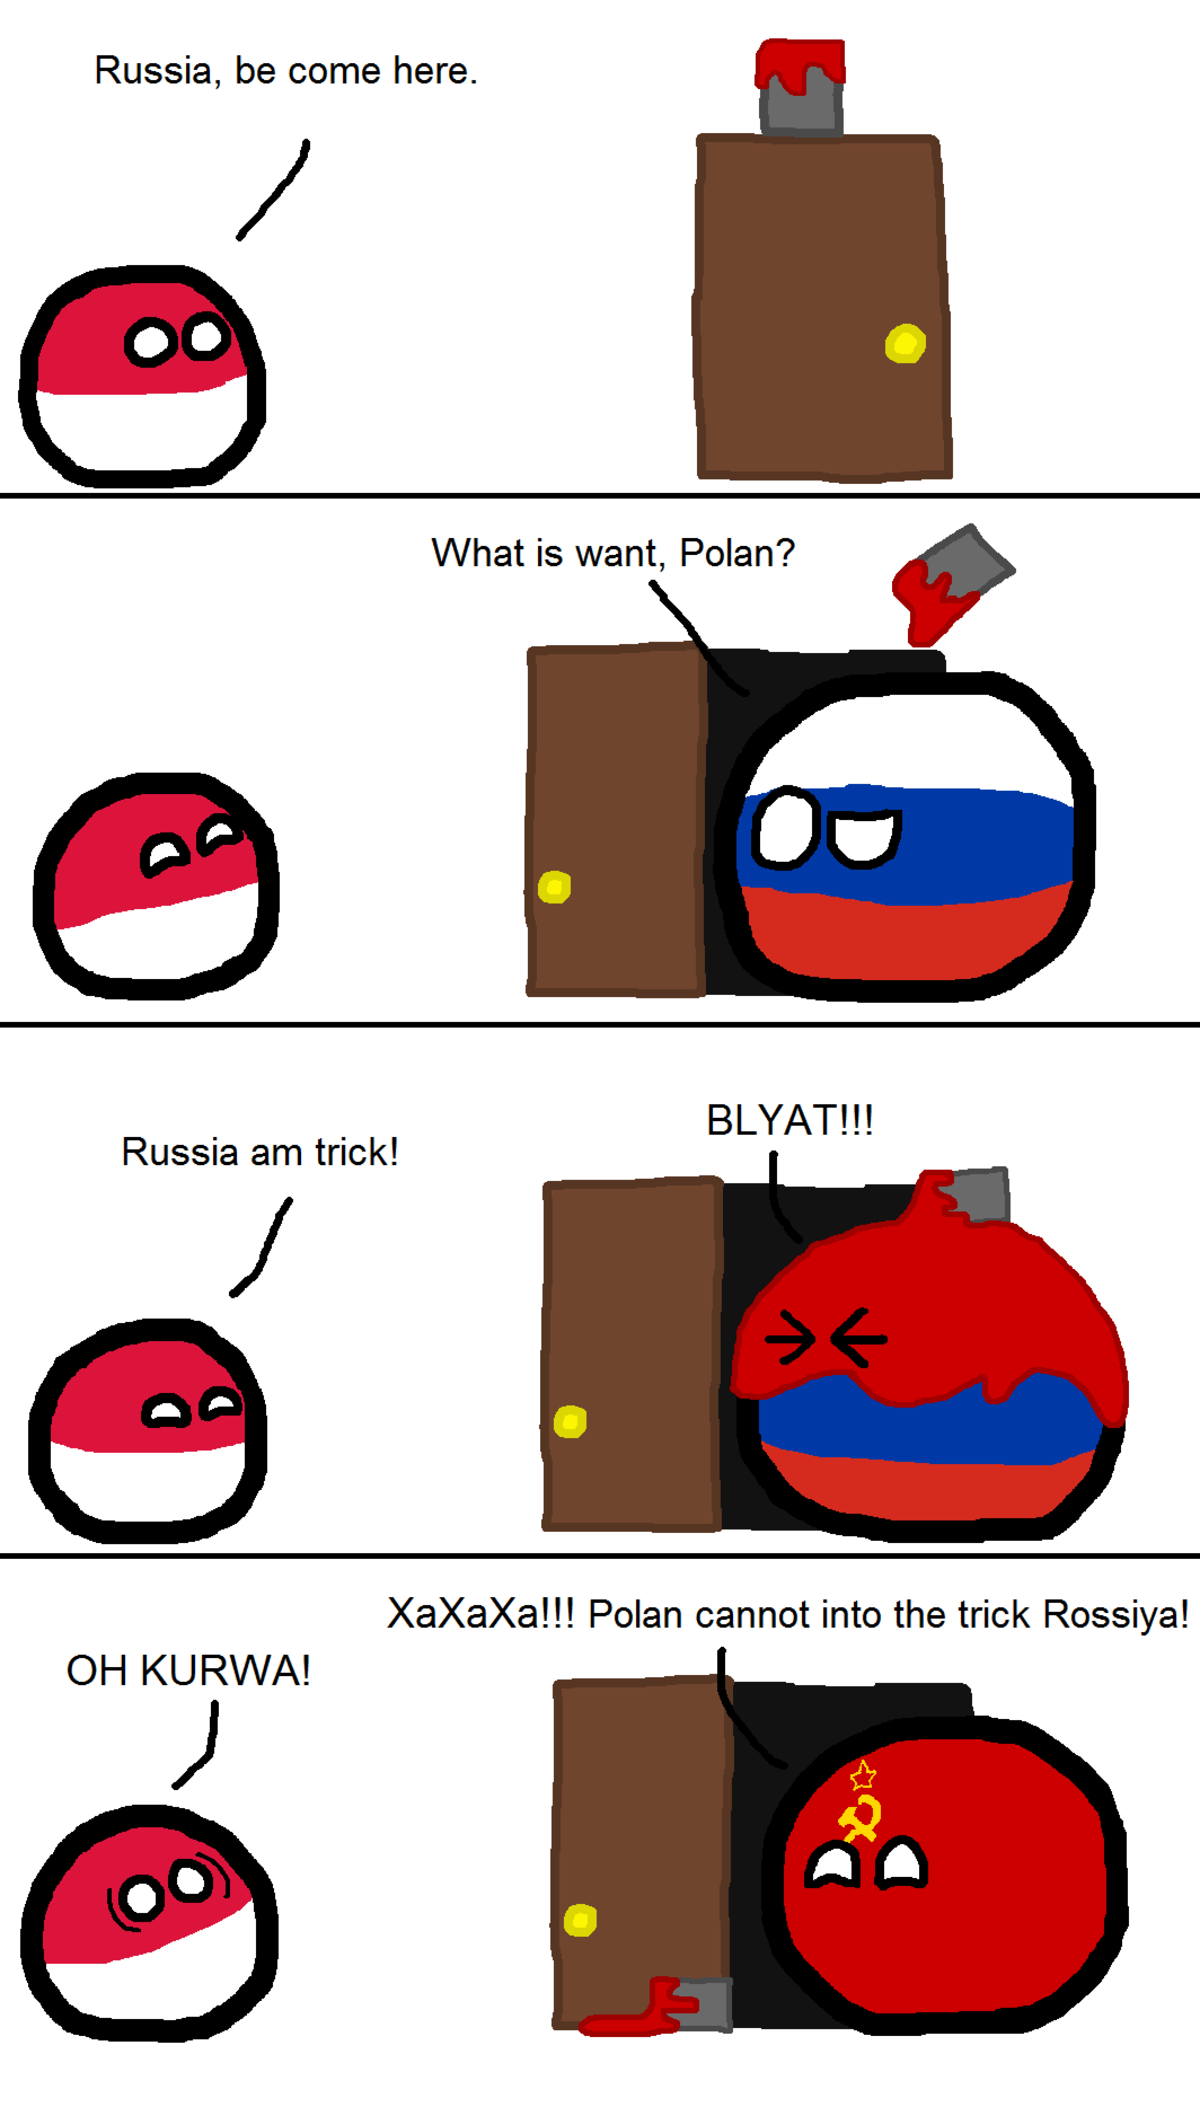 Poland tries to trick Russia. . Russia, be come here. What is want, Polan? f BLYAT!!! Russia am trick! l Xaxaxa!!! Polan cannot into the trick Rossiya! OH RWA!